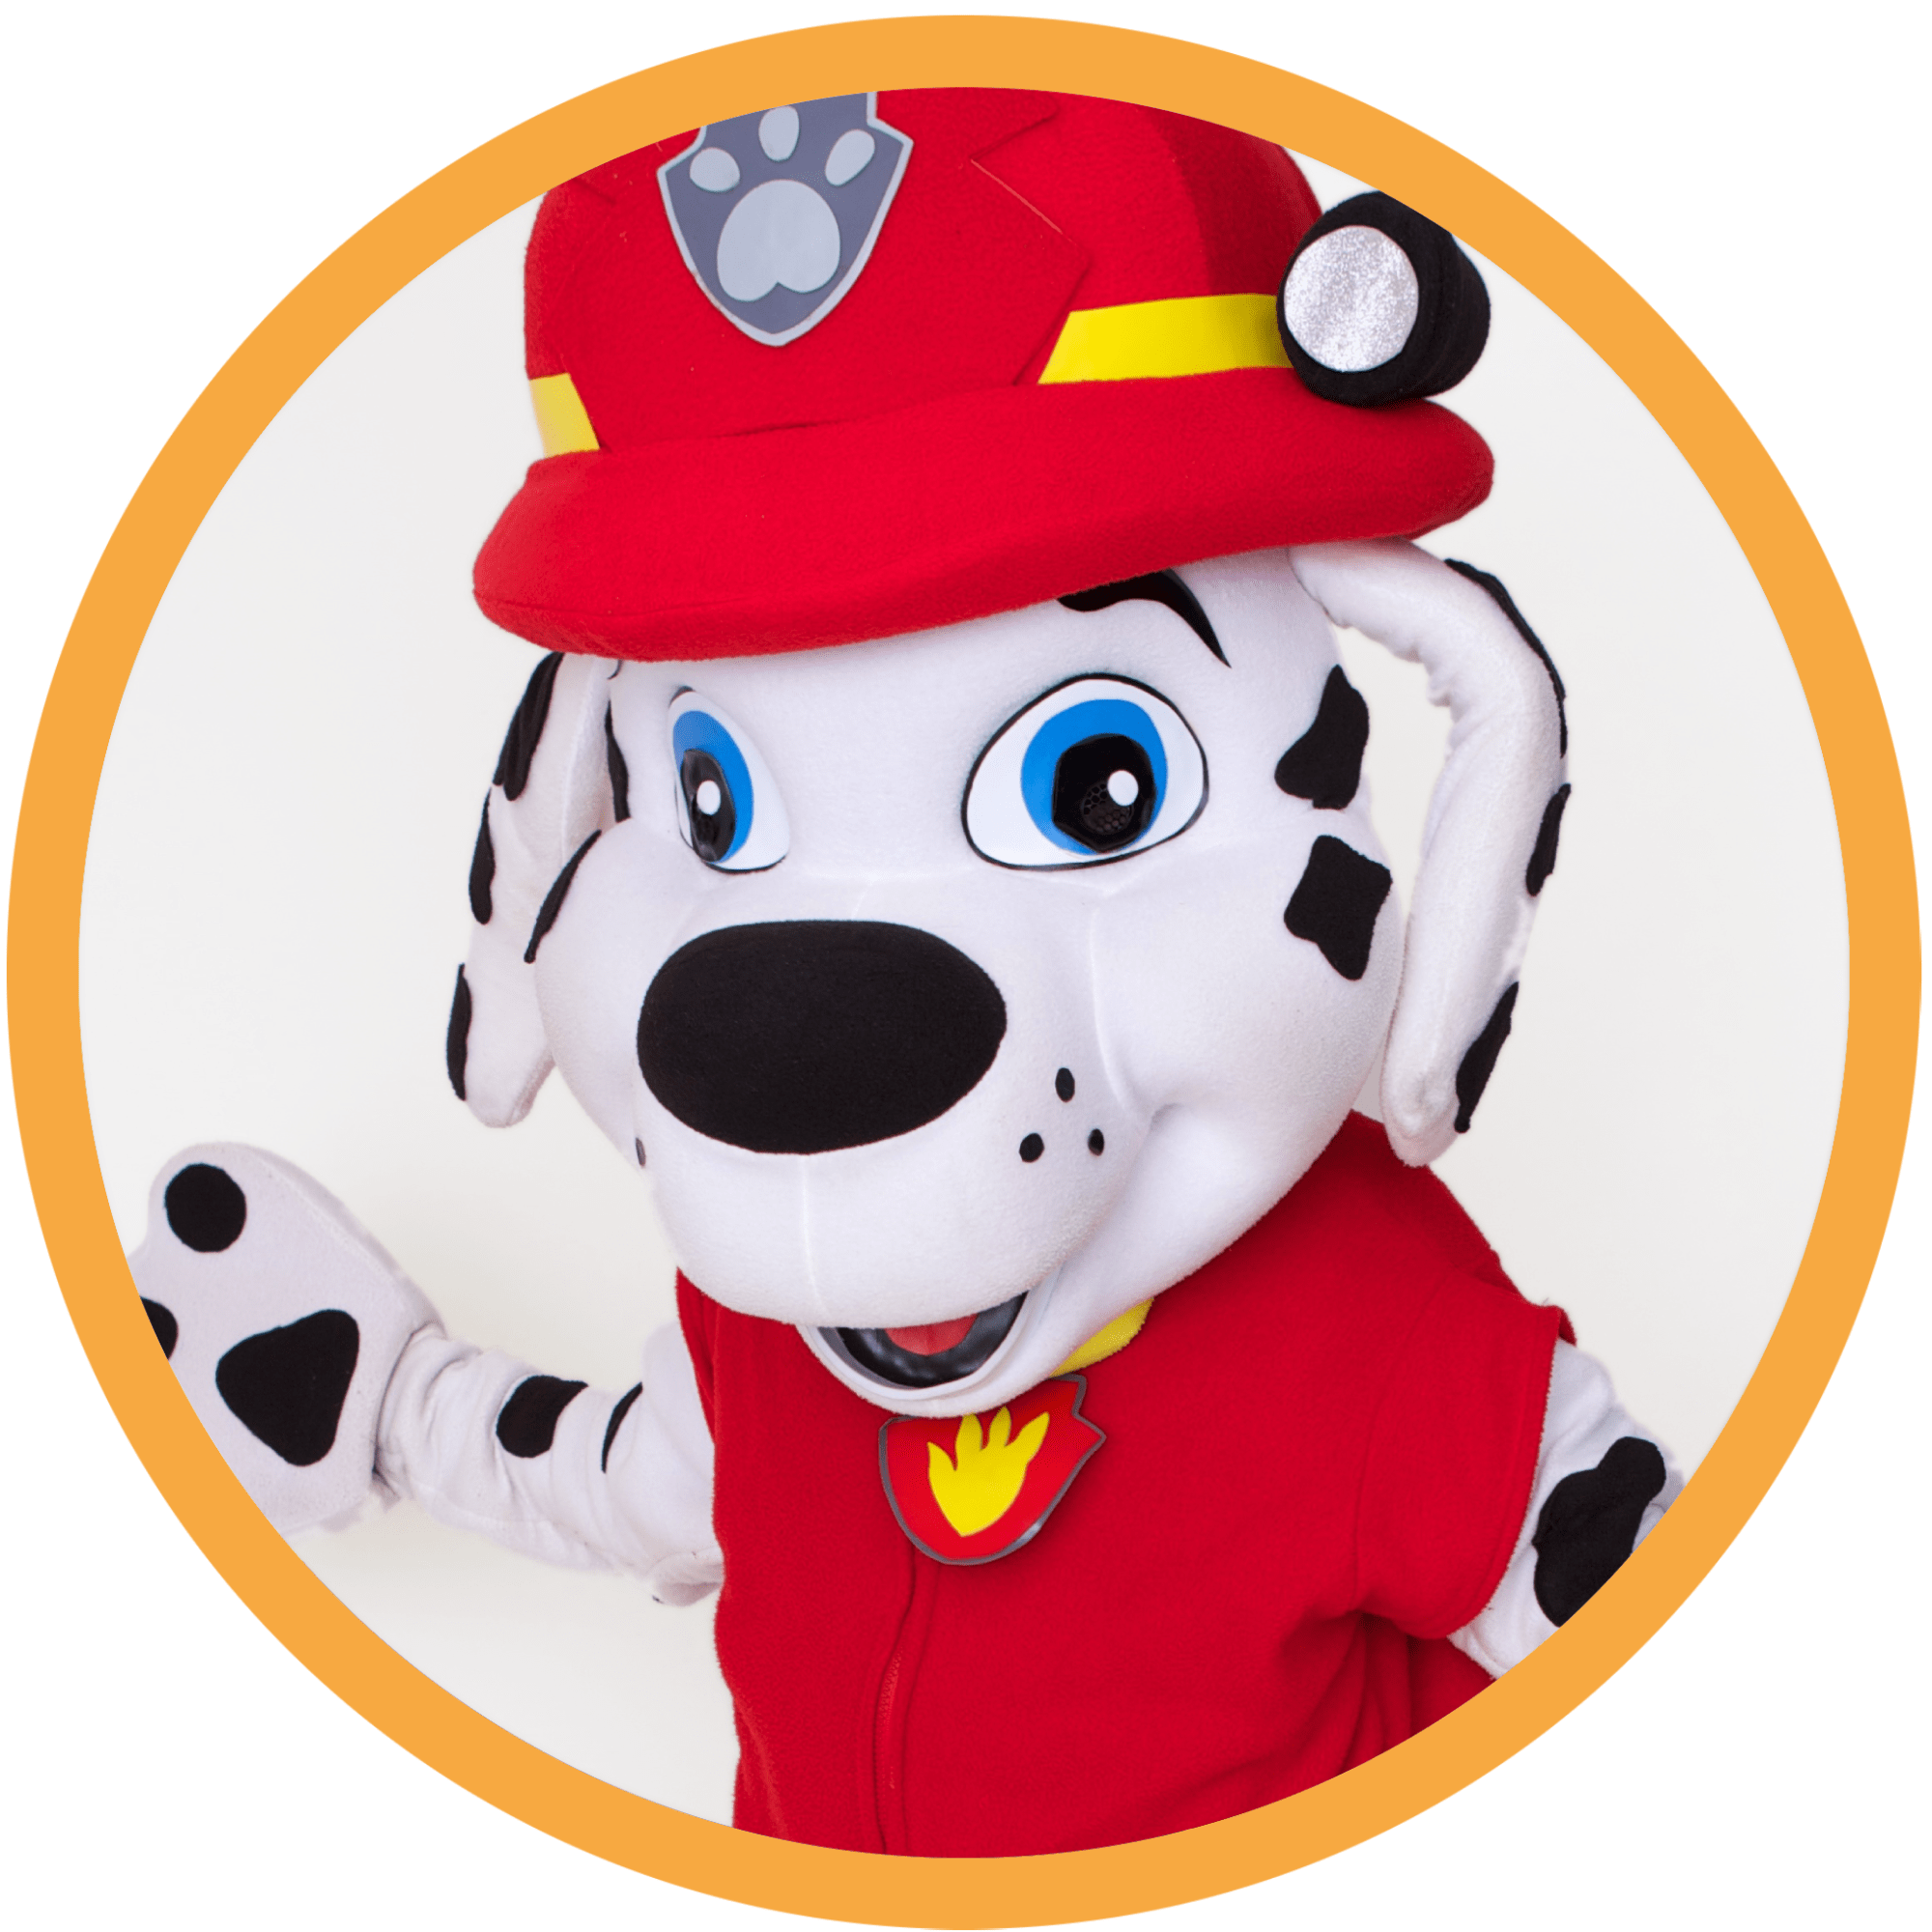 marshall pup, our characters